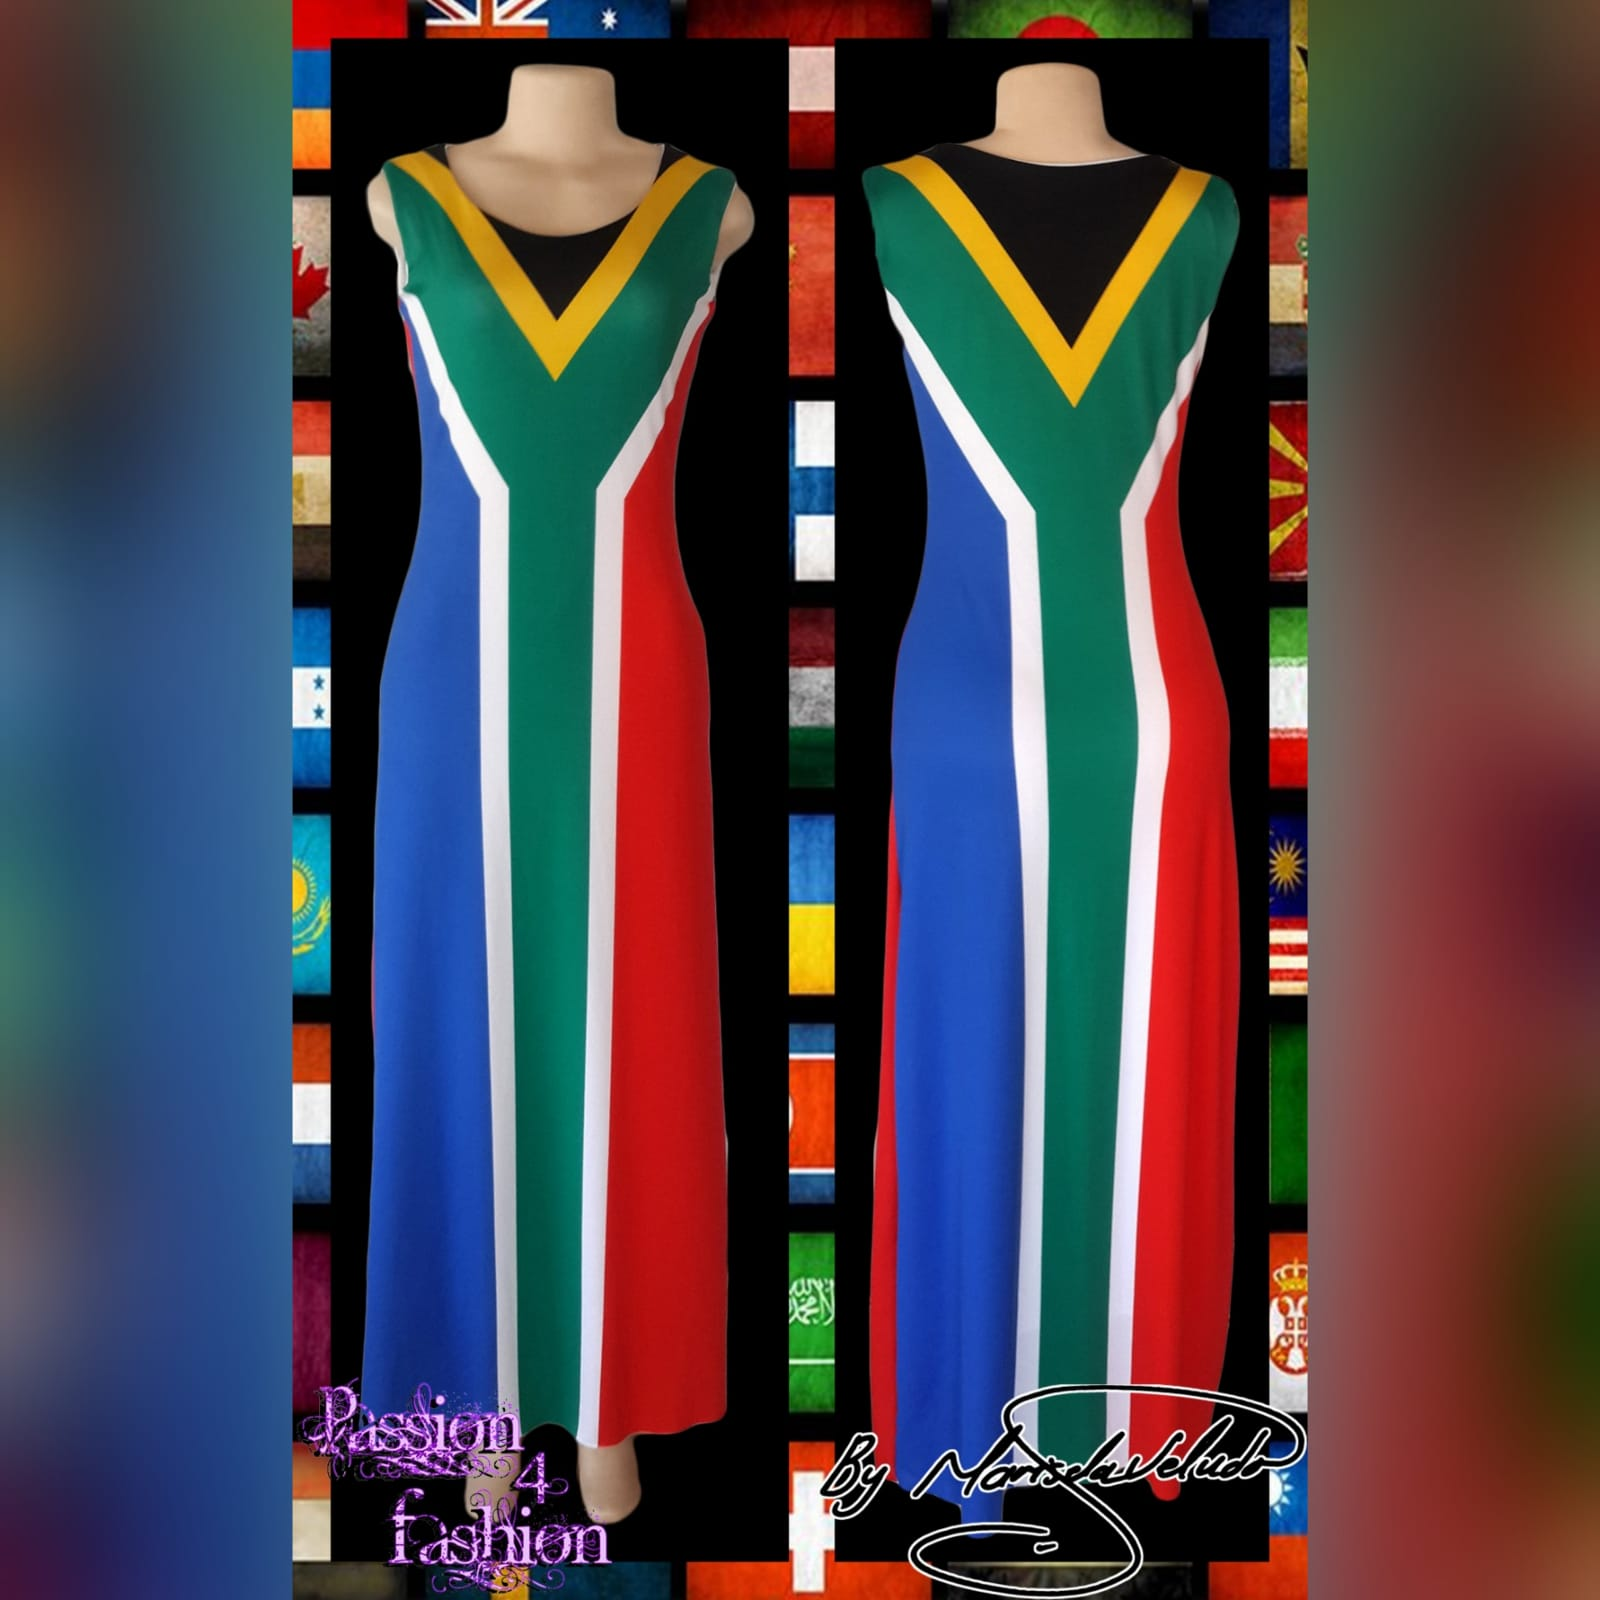 Long custom printed south african flag dress 2 long custom printed south african flag dress (flag in front and the back) with matching bow ties that you can request at an extra cost when you order your dress.